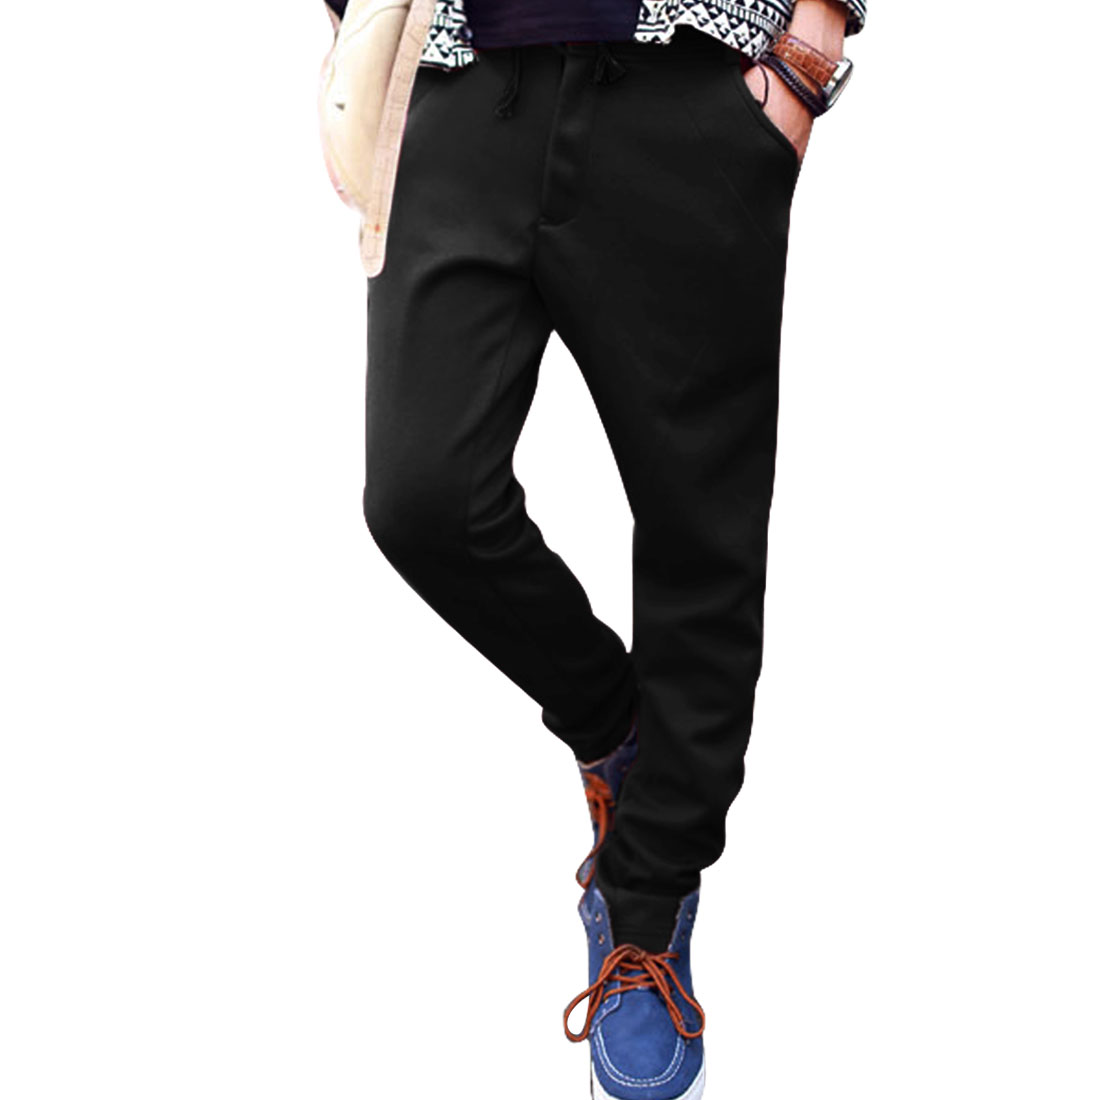 Black Back Button Decor Pocket Belt Loops Long Pants Trousers Man W32